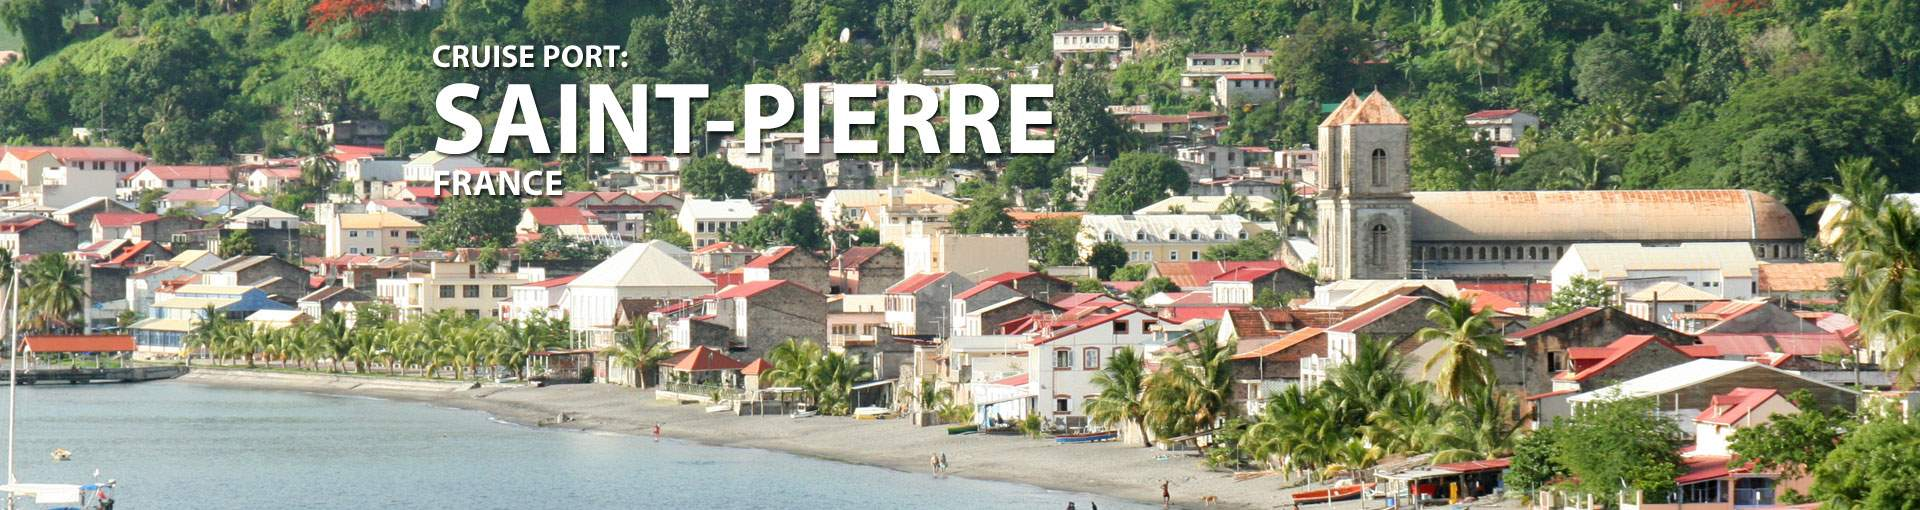 Cruises to Saint-Pierre, France